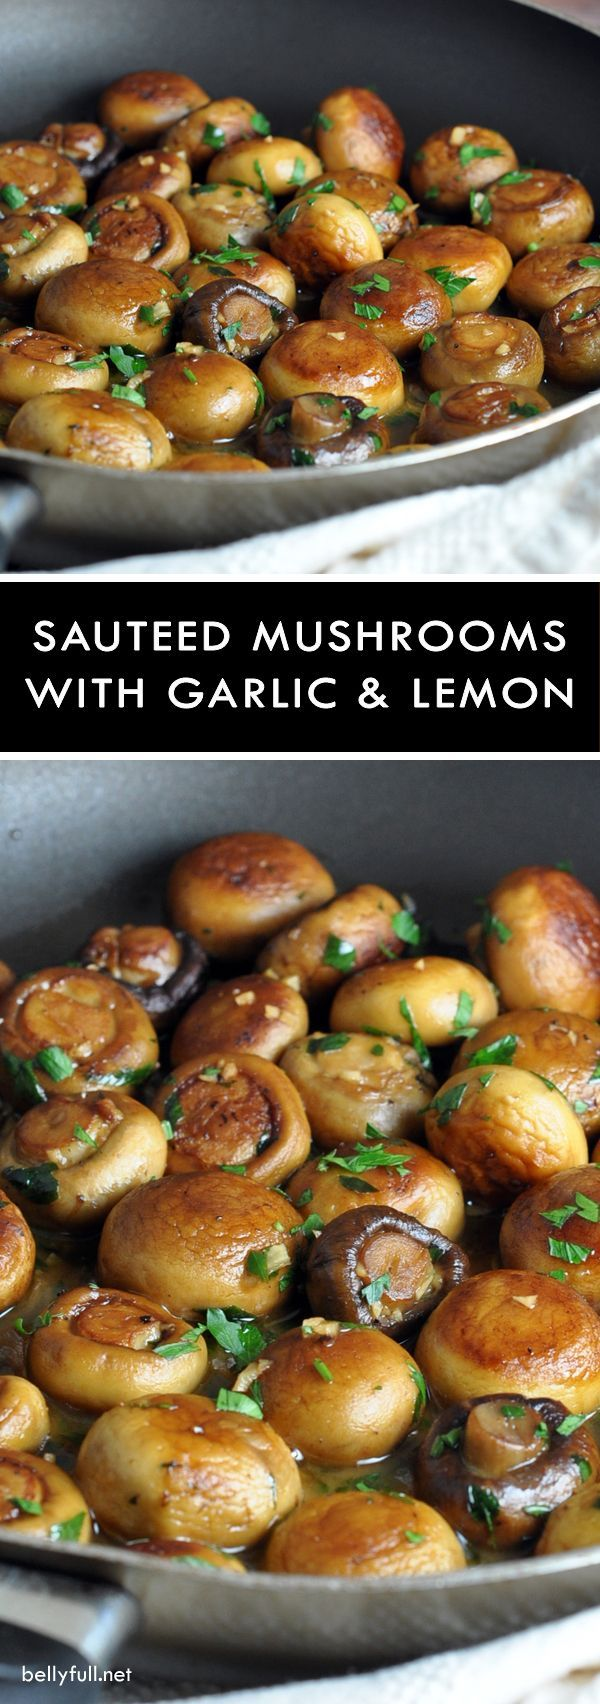 Sauteed Mushrooms with Garlic and Lemon Pan Sauce - two kinds of mushrooms are Sauteed in butter, olive oil, garlic, wIne, and lemon juice, which creates a wonderful pan sauce!